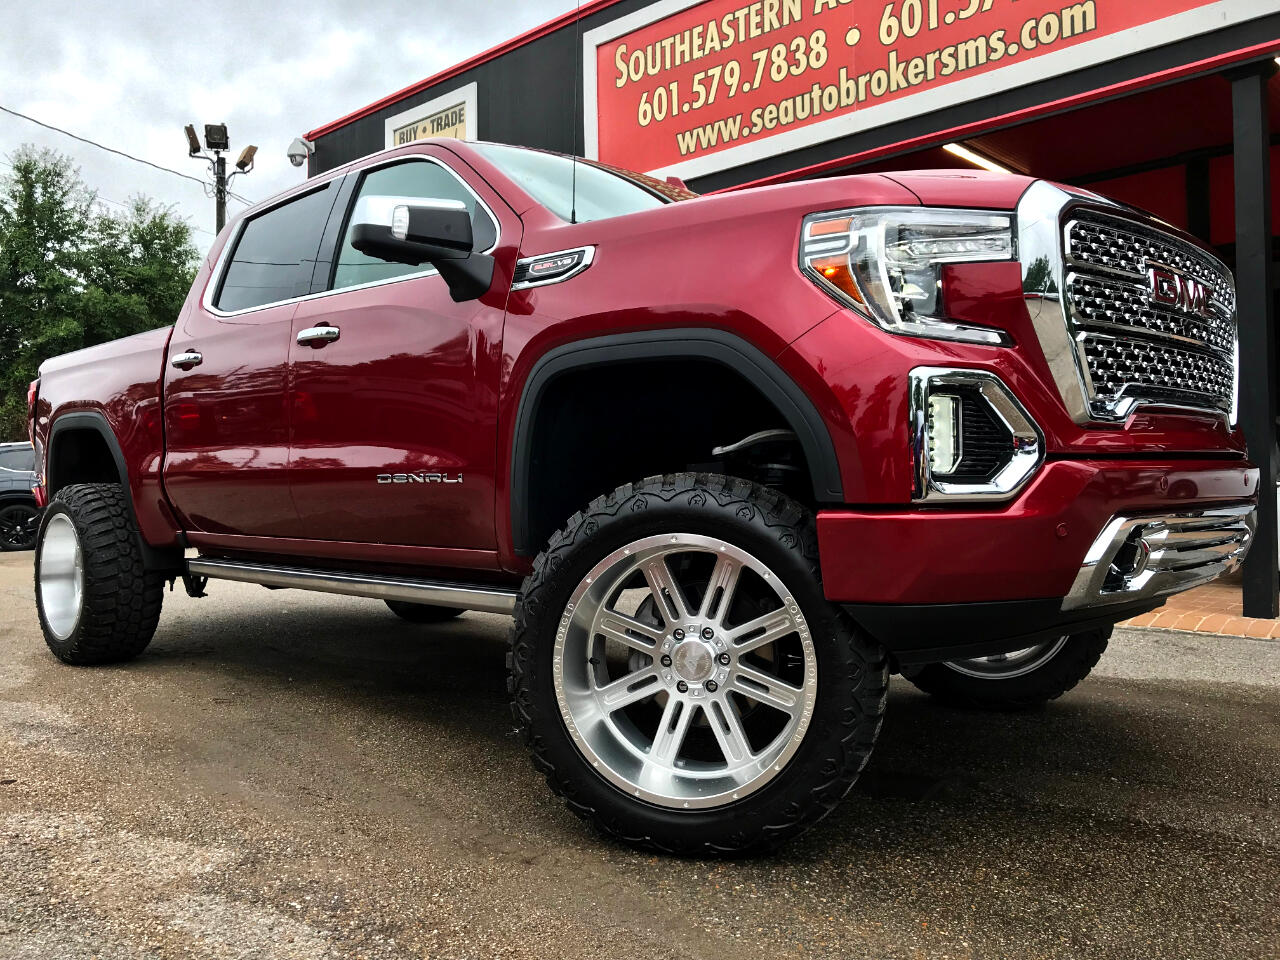 2019 GMC Sierra 1500 DENALI CREW CAB SHORT BED 4WD CUSTOM LIFTED